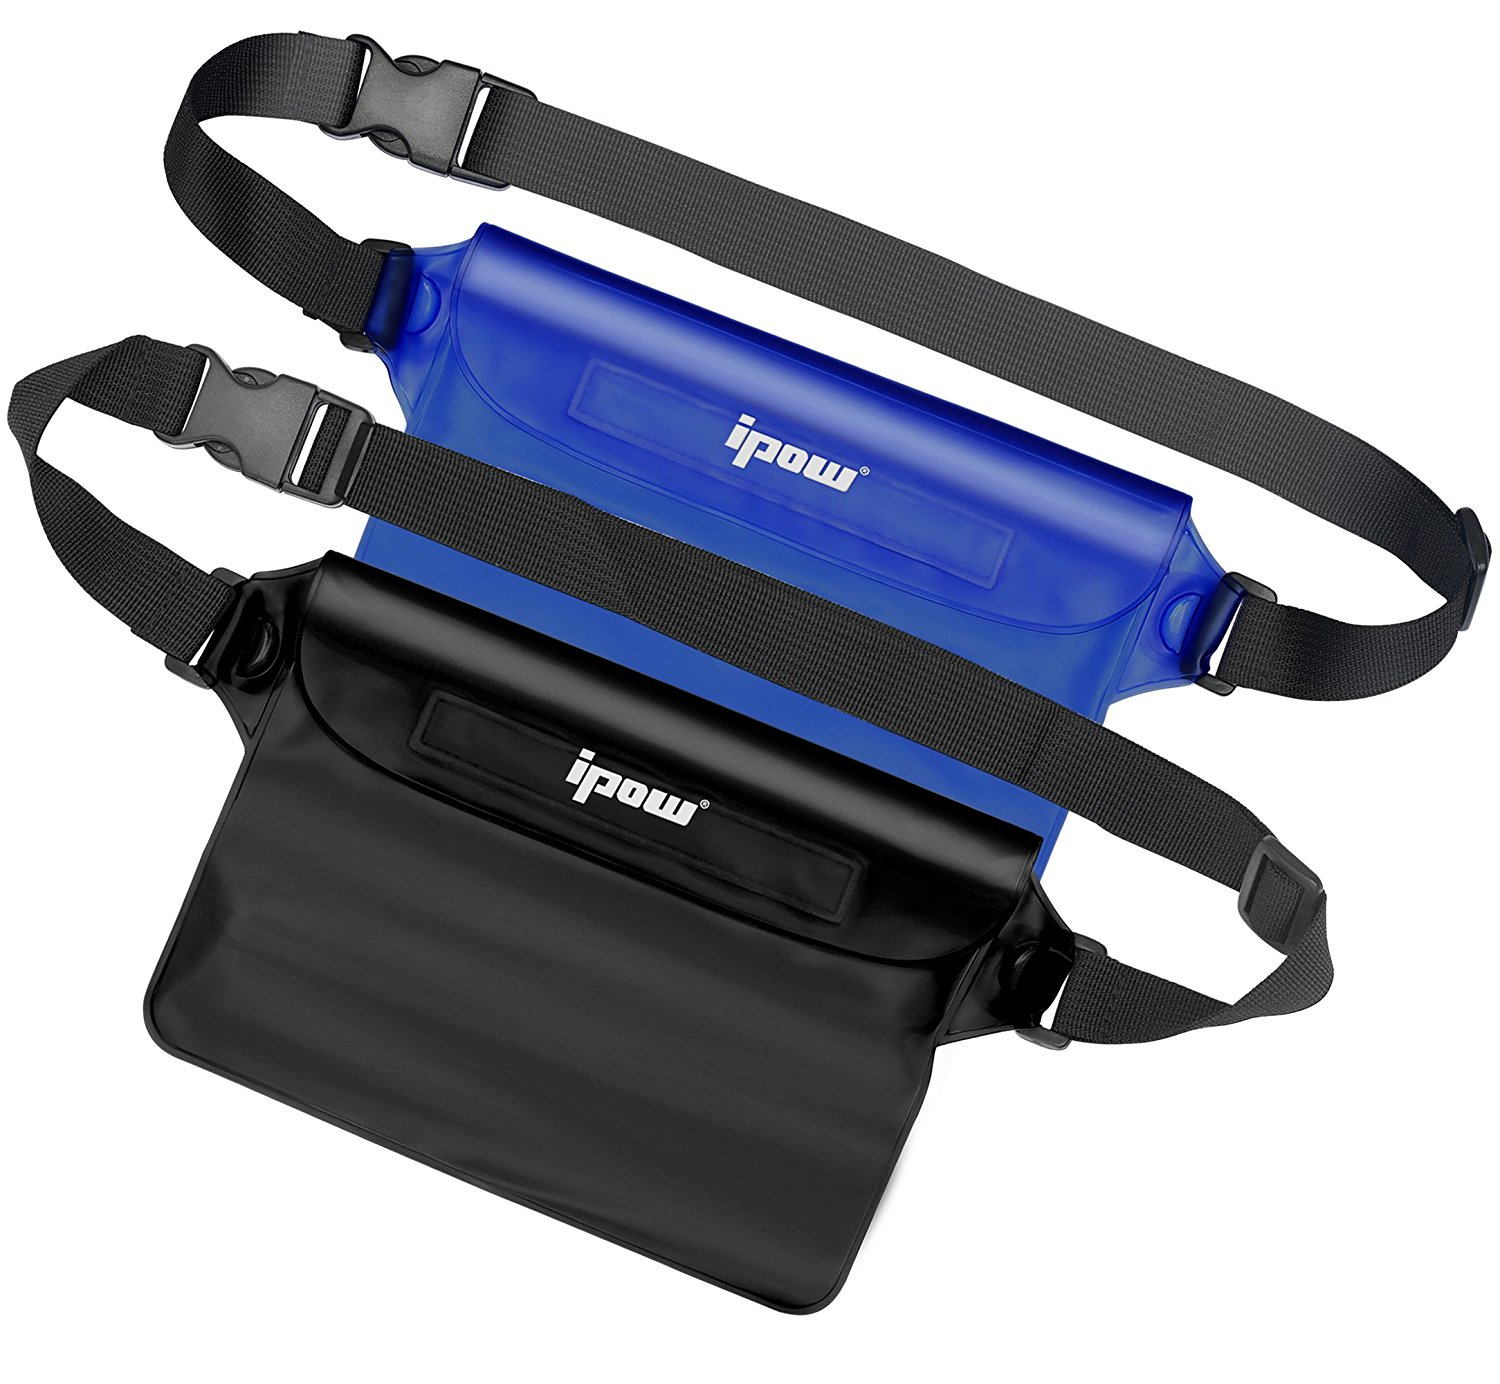 2 Pack,Ipow Waterproof Pouch Bag Case Waist Strap for Beach, Swim, Boating, Kayaking, Hiking, Etc,Protect Iphone,Cellphone,Camera,Cash,Mp3,Passport, Document